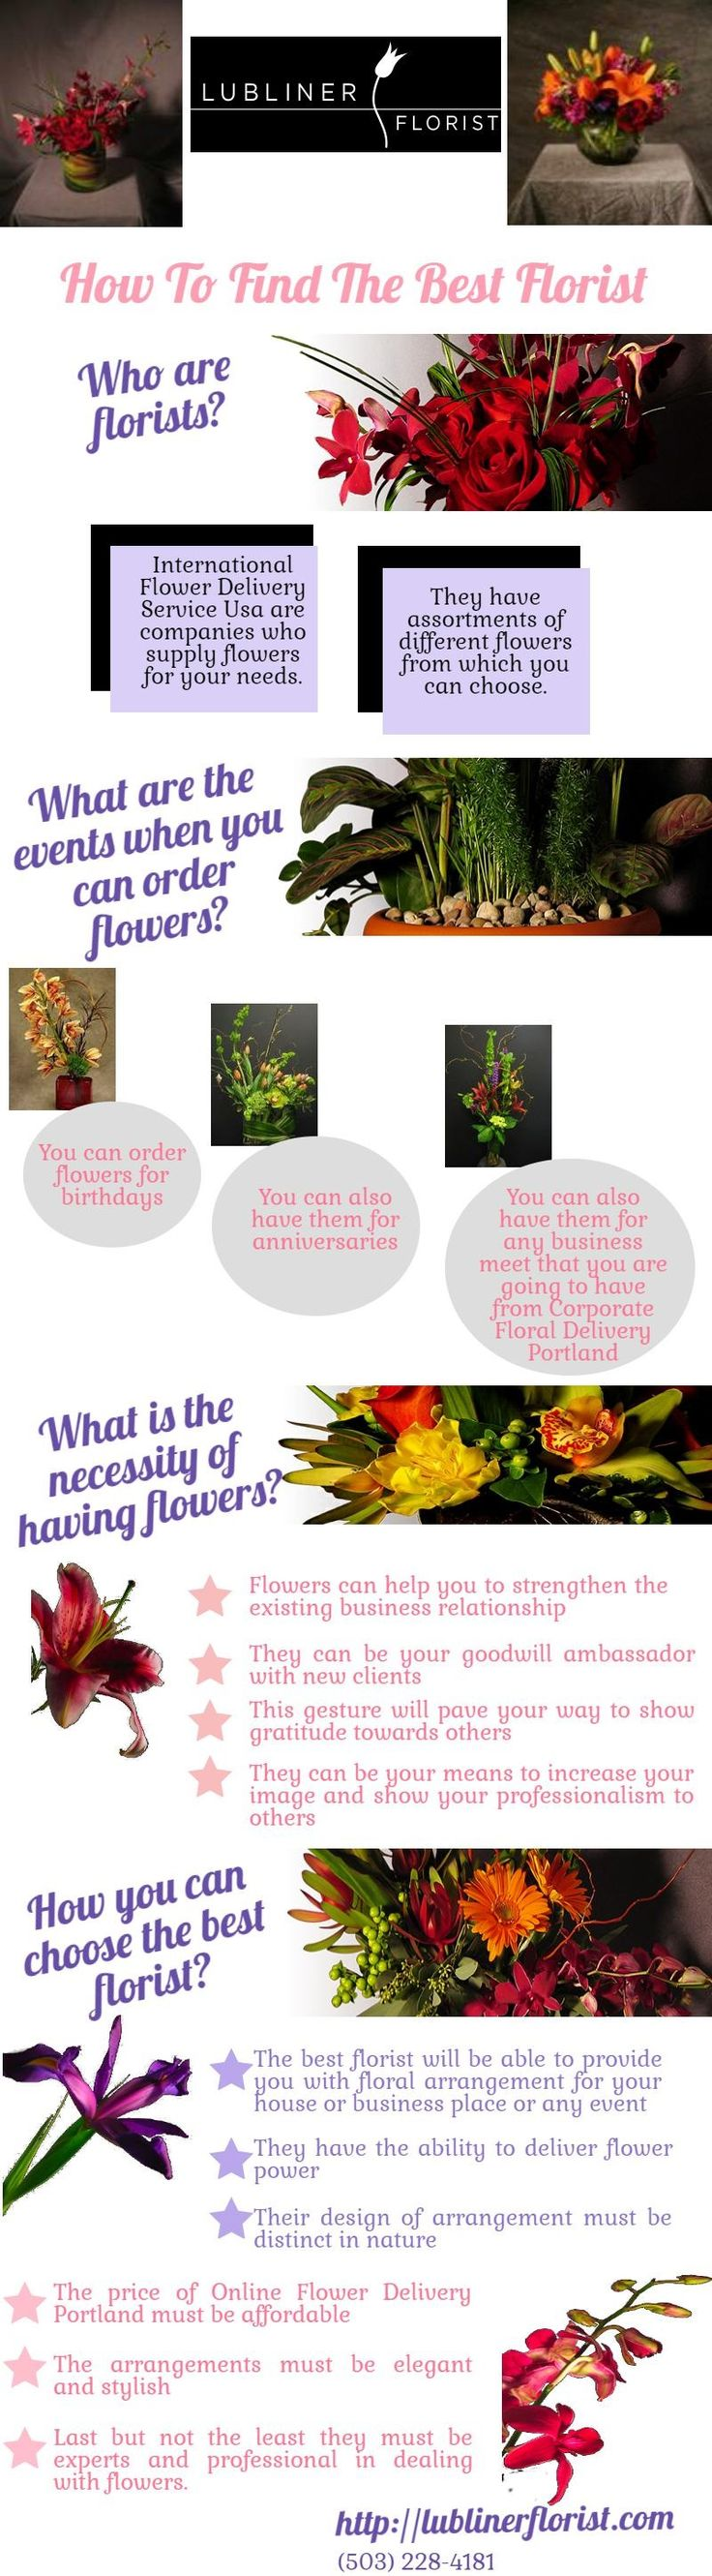 International Flower Delivery Service Usa are companies who supply flowers for your needs. They have assortments of different flowers from which you can choose.http://lublinerflorist.com